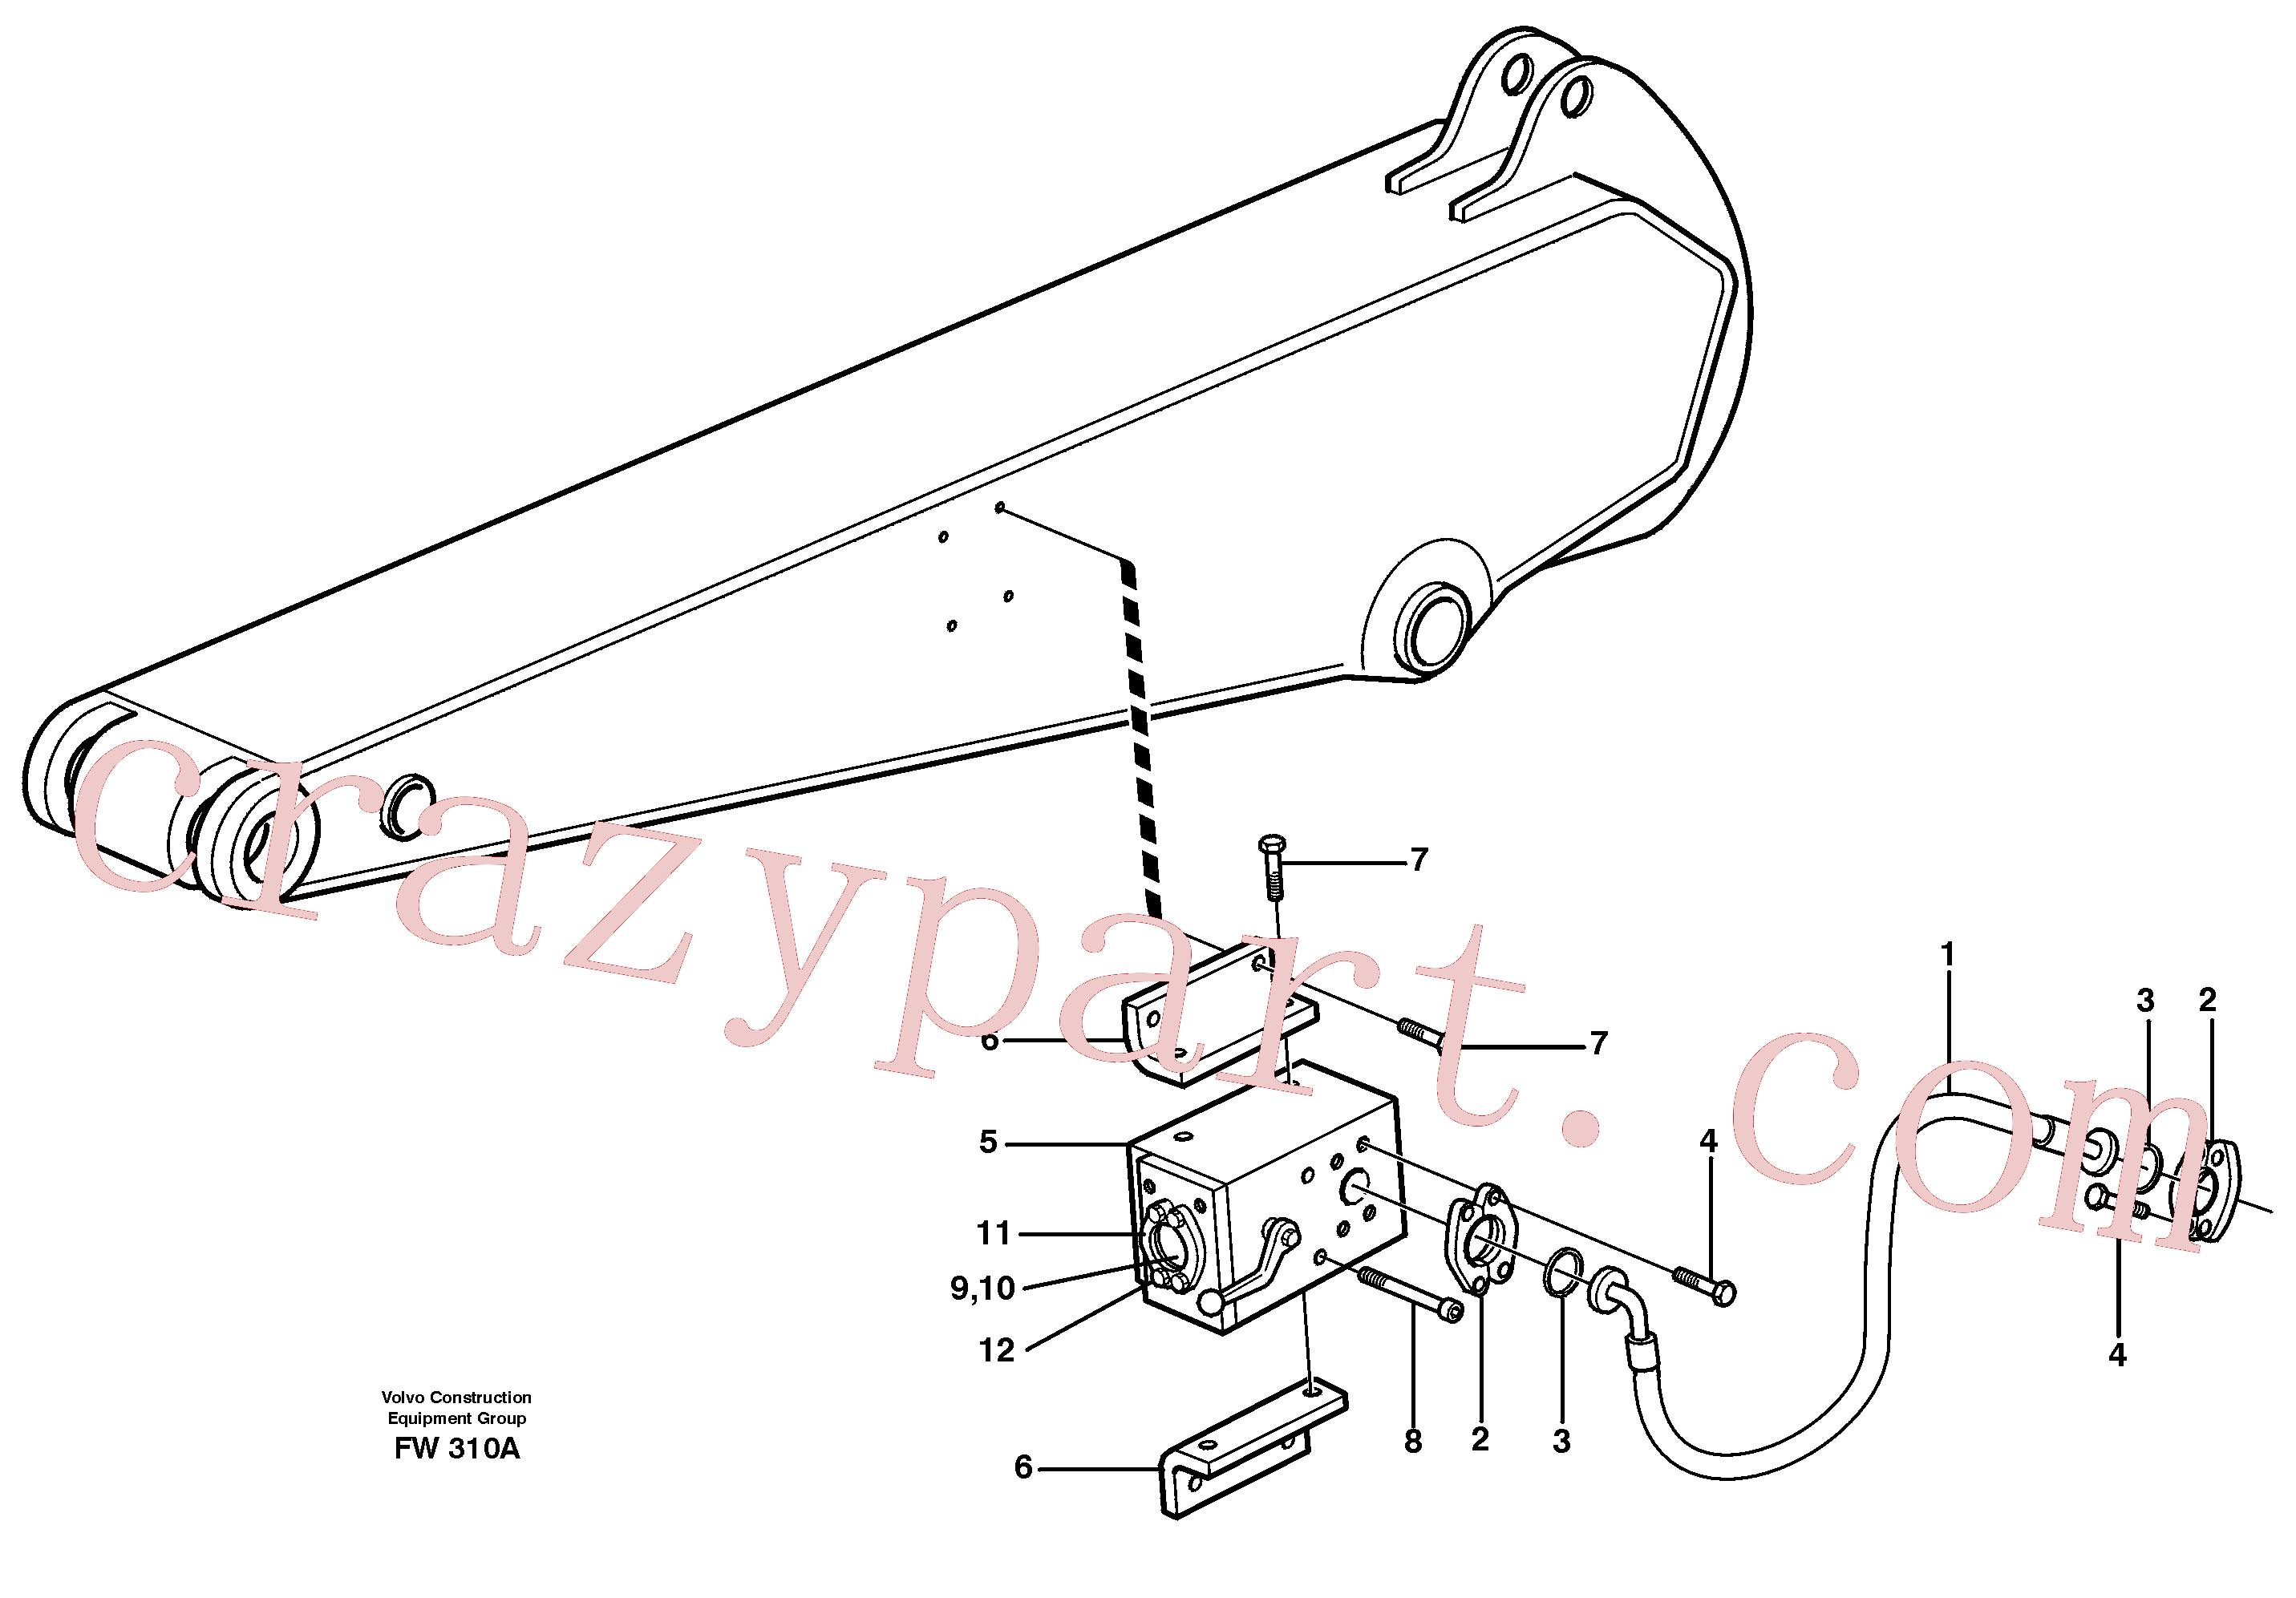 VOE14310135 for Volvo Hammer hydraulics on dipper arm(FW310A assembly)